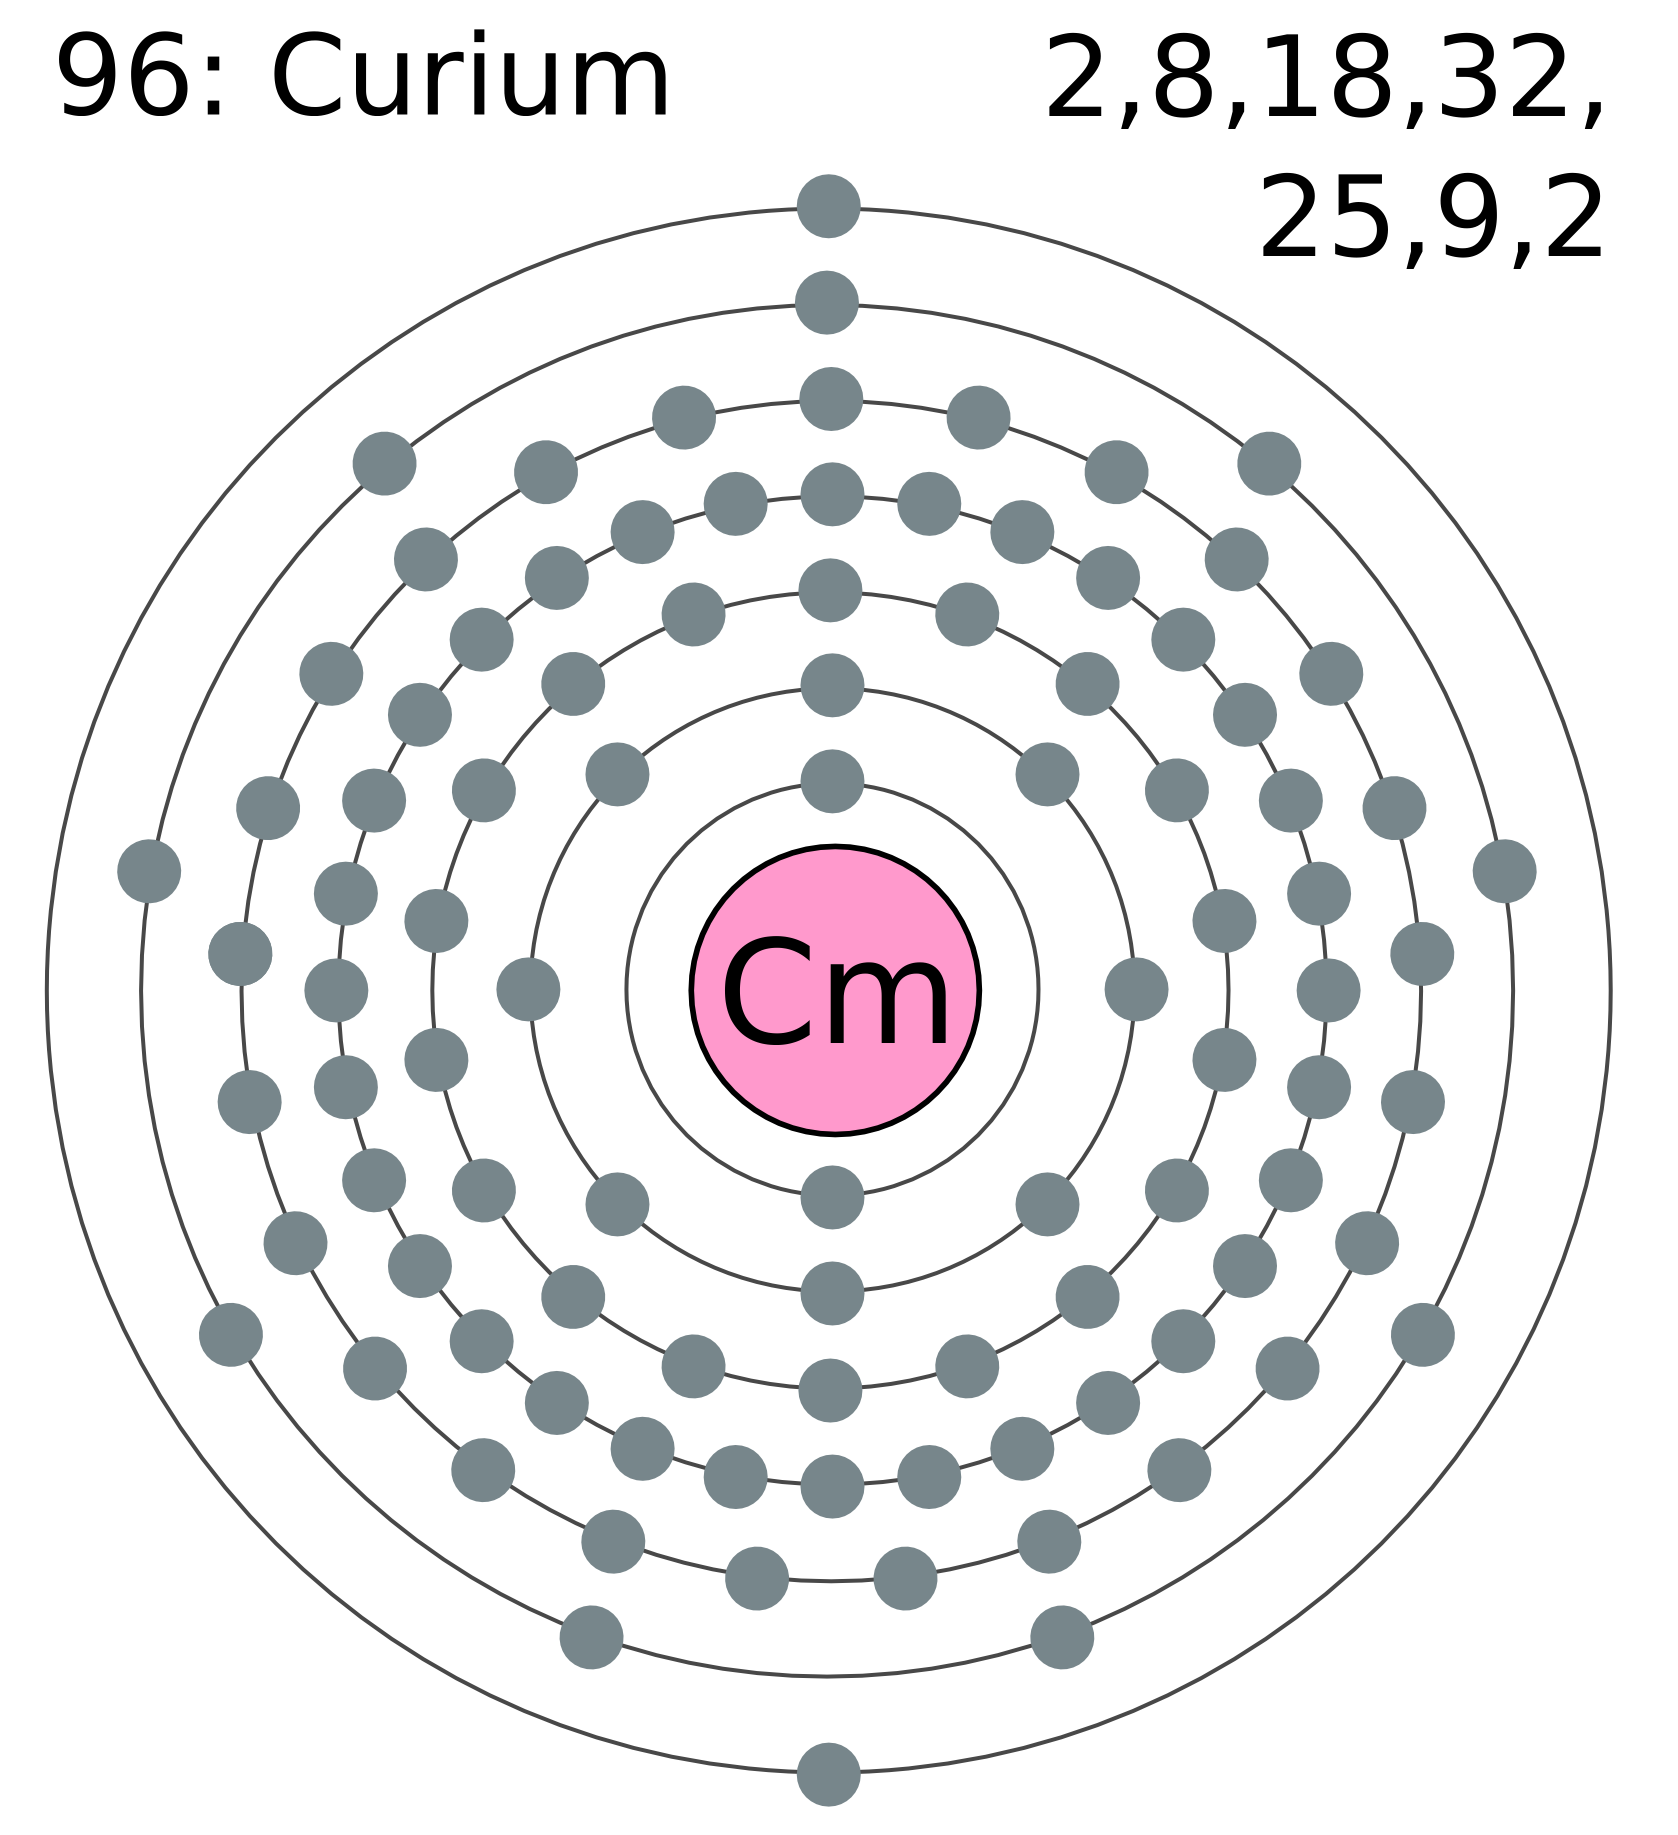 hight resolution of man made element curium possible rough draft idea for tattoo